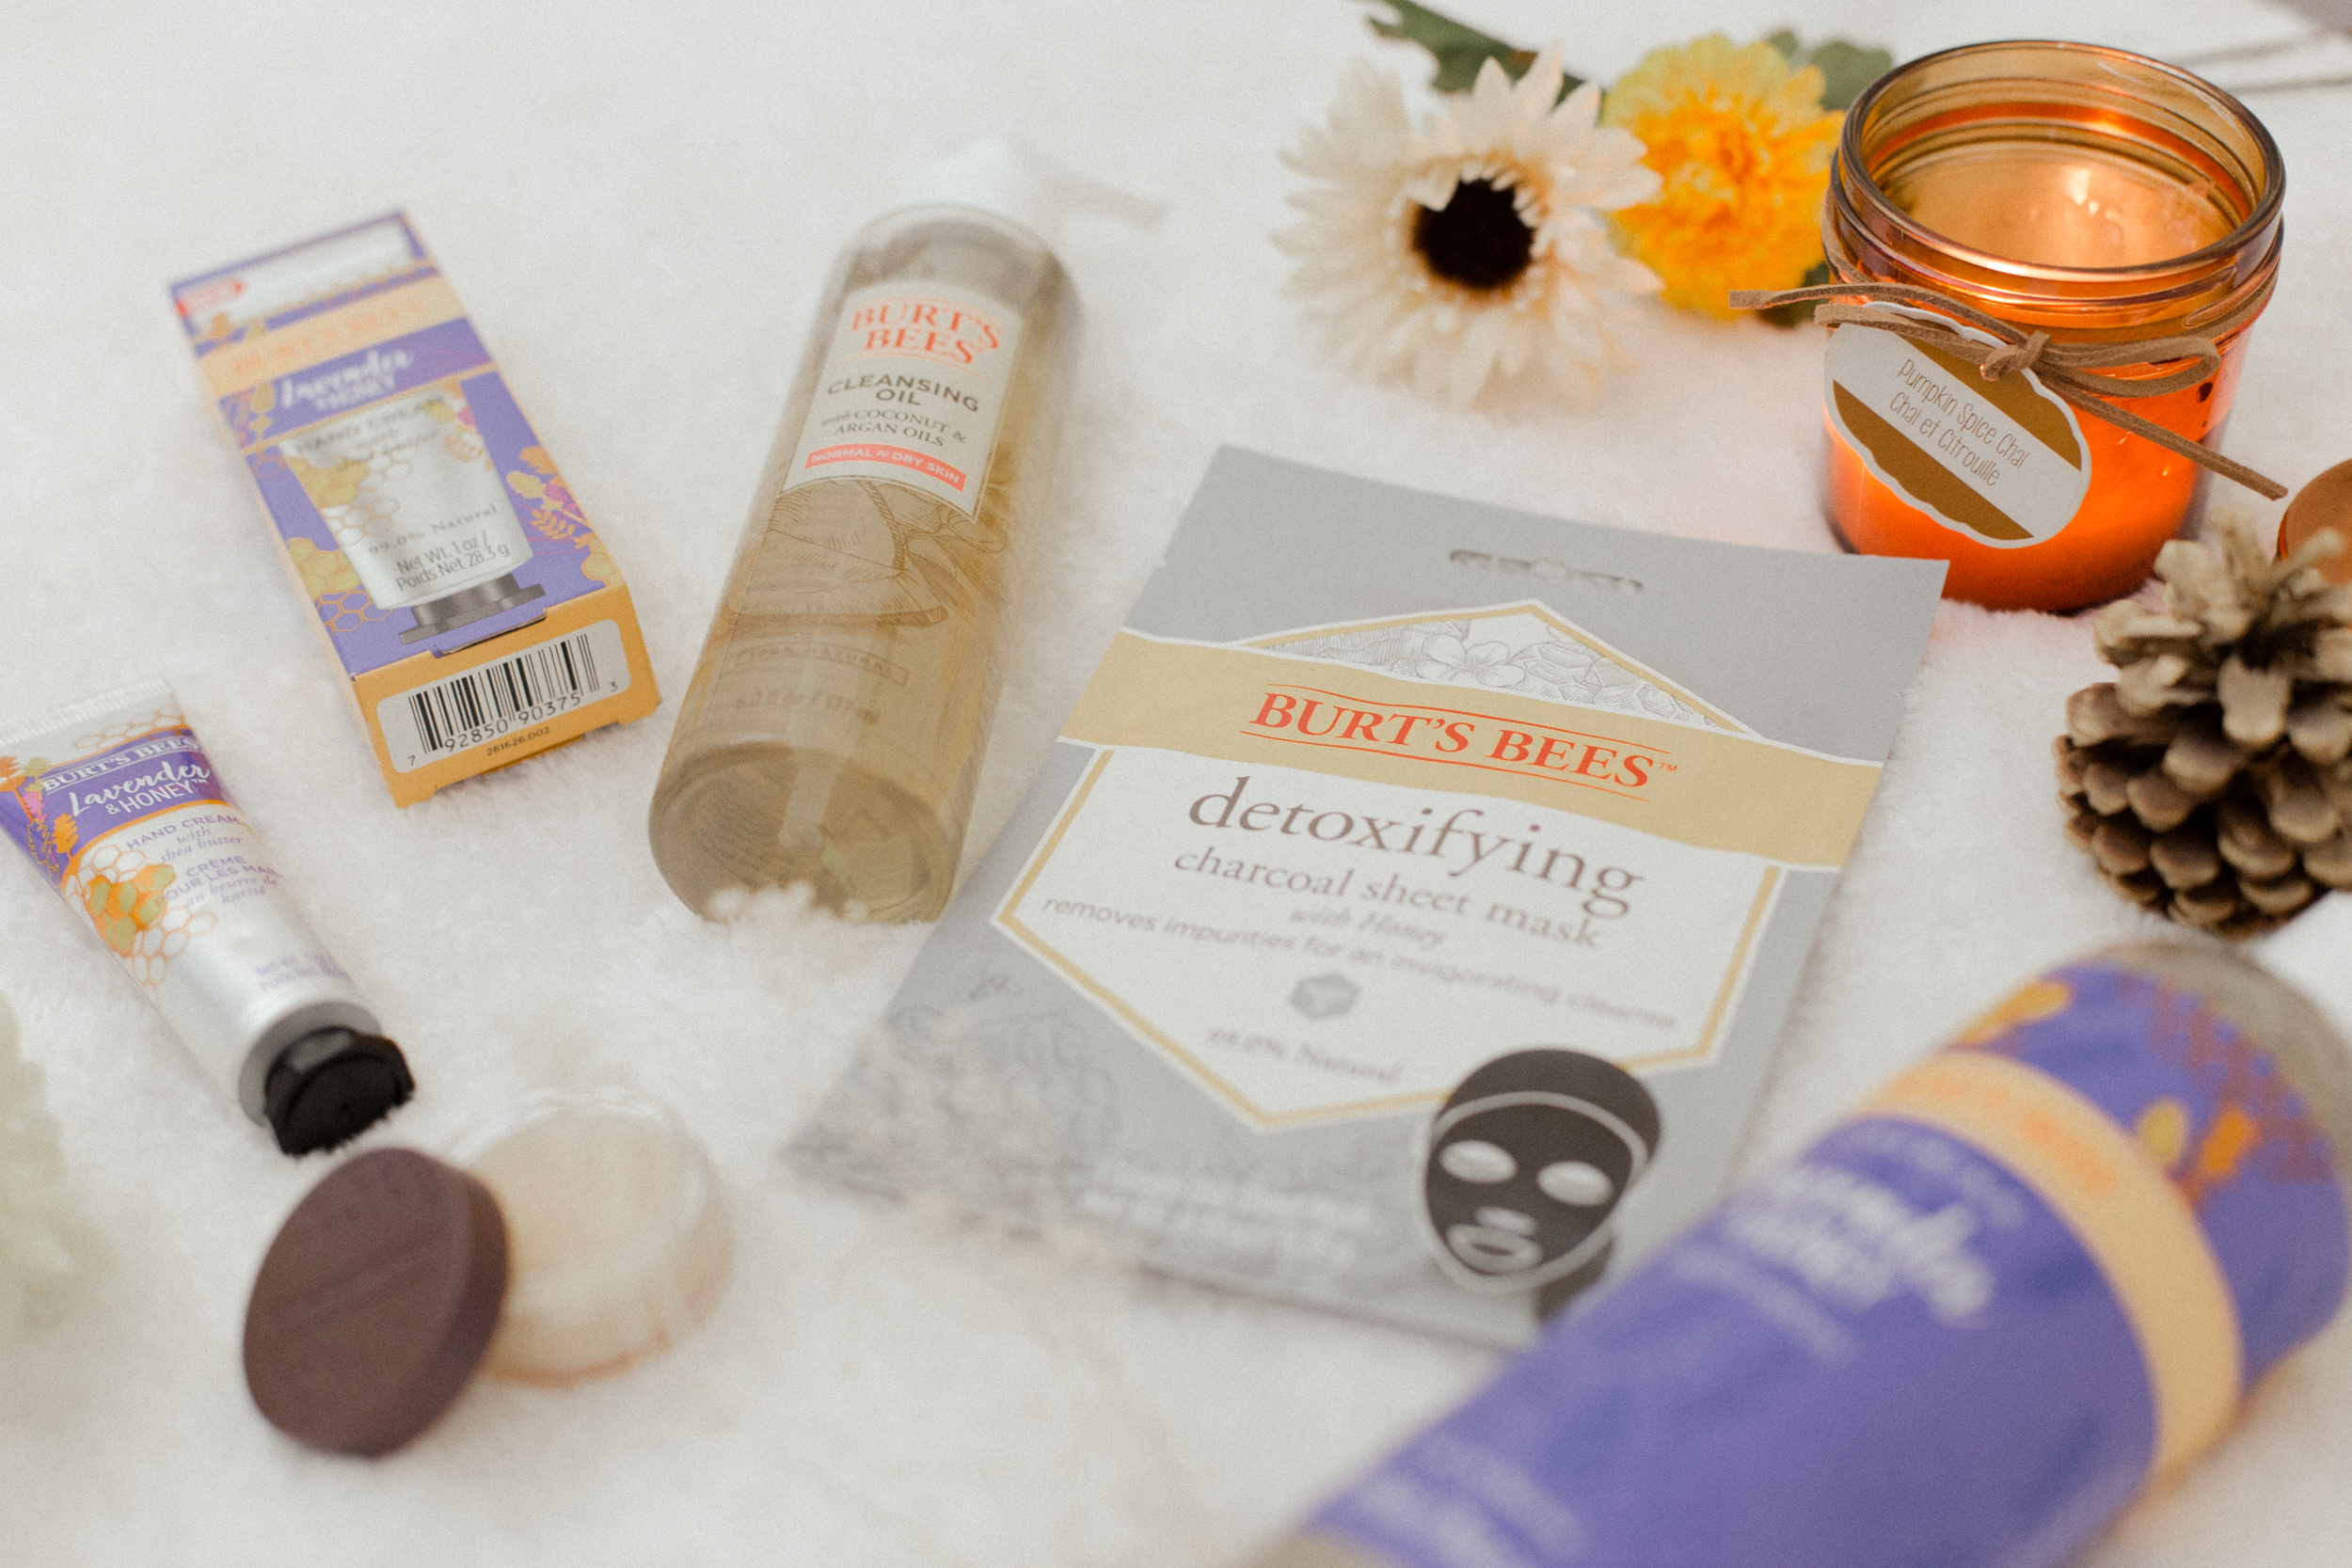 Enjoy A Spa Night at Home with Burt's Bees